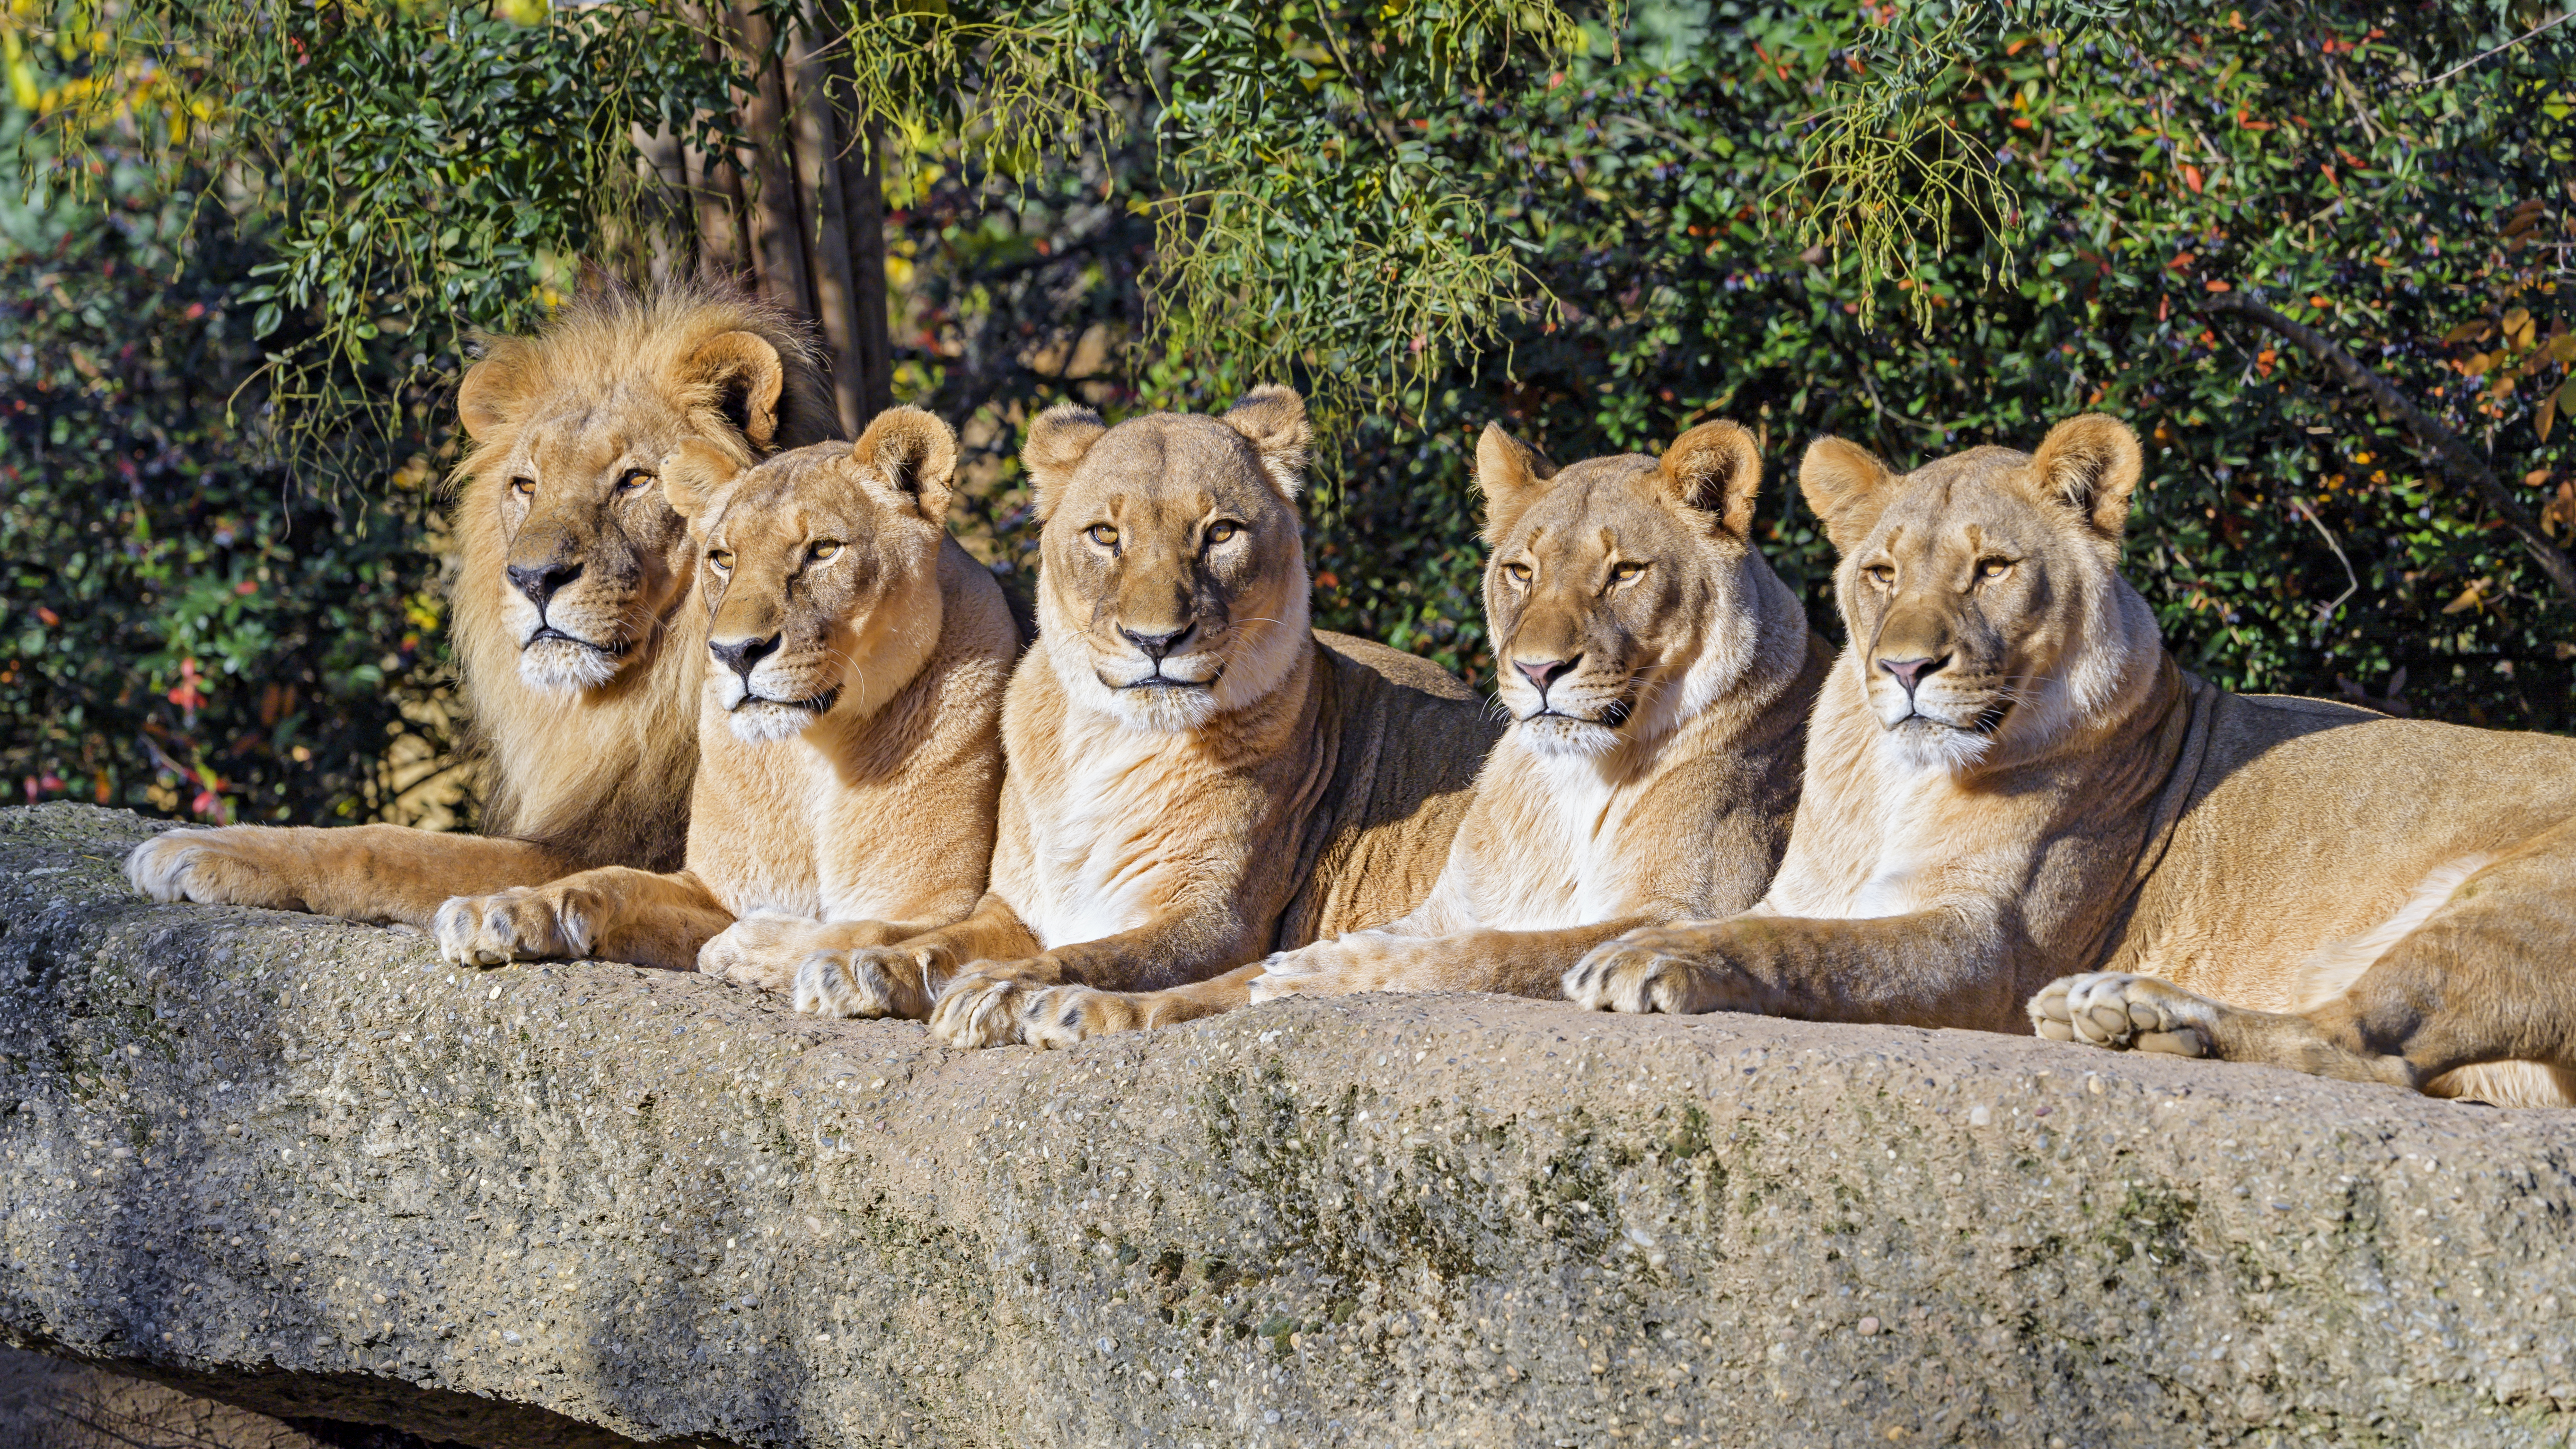 135506 download wallpaper Animals, Predator, Big Cat, Animal, Wildlife, Lions screensavers and pictures for free